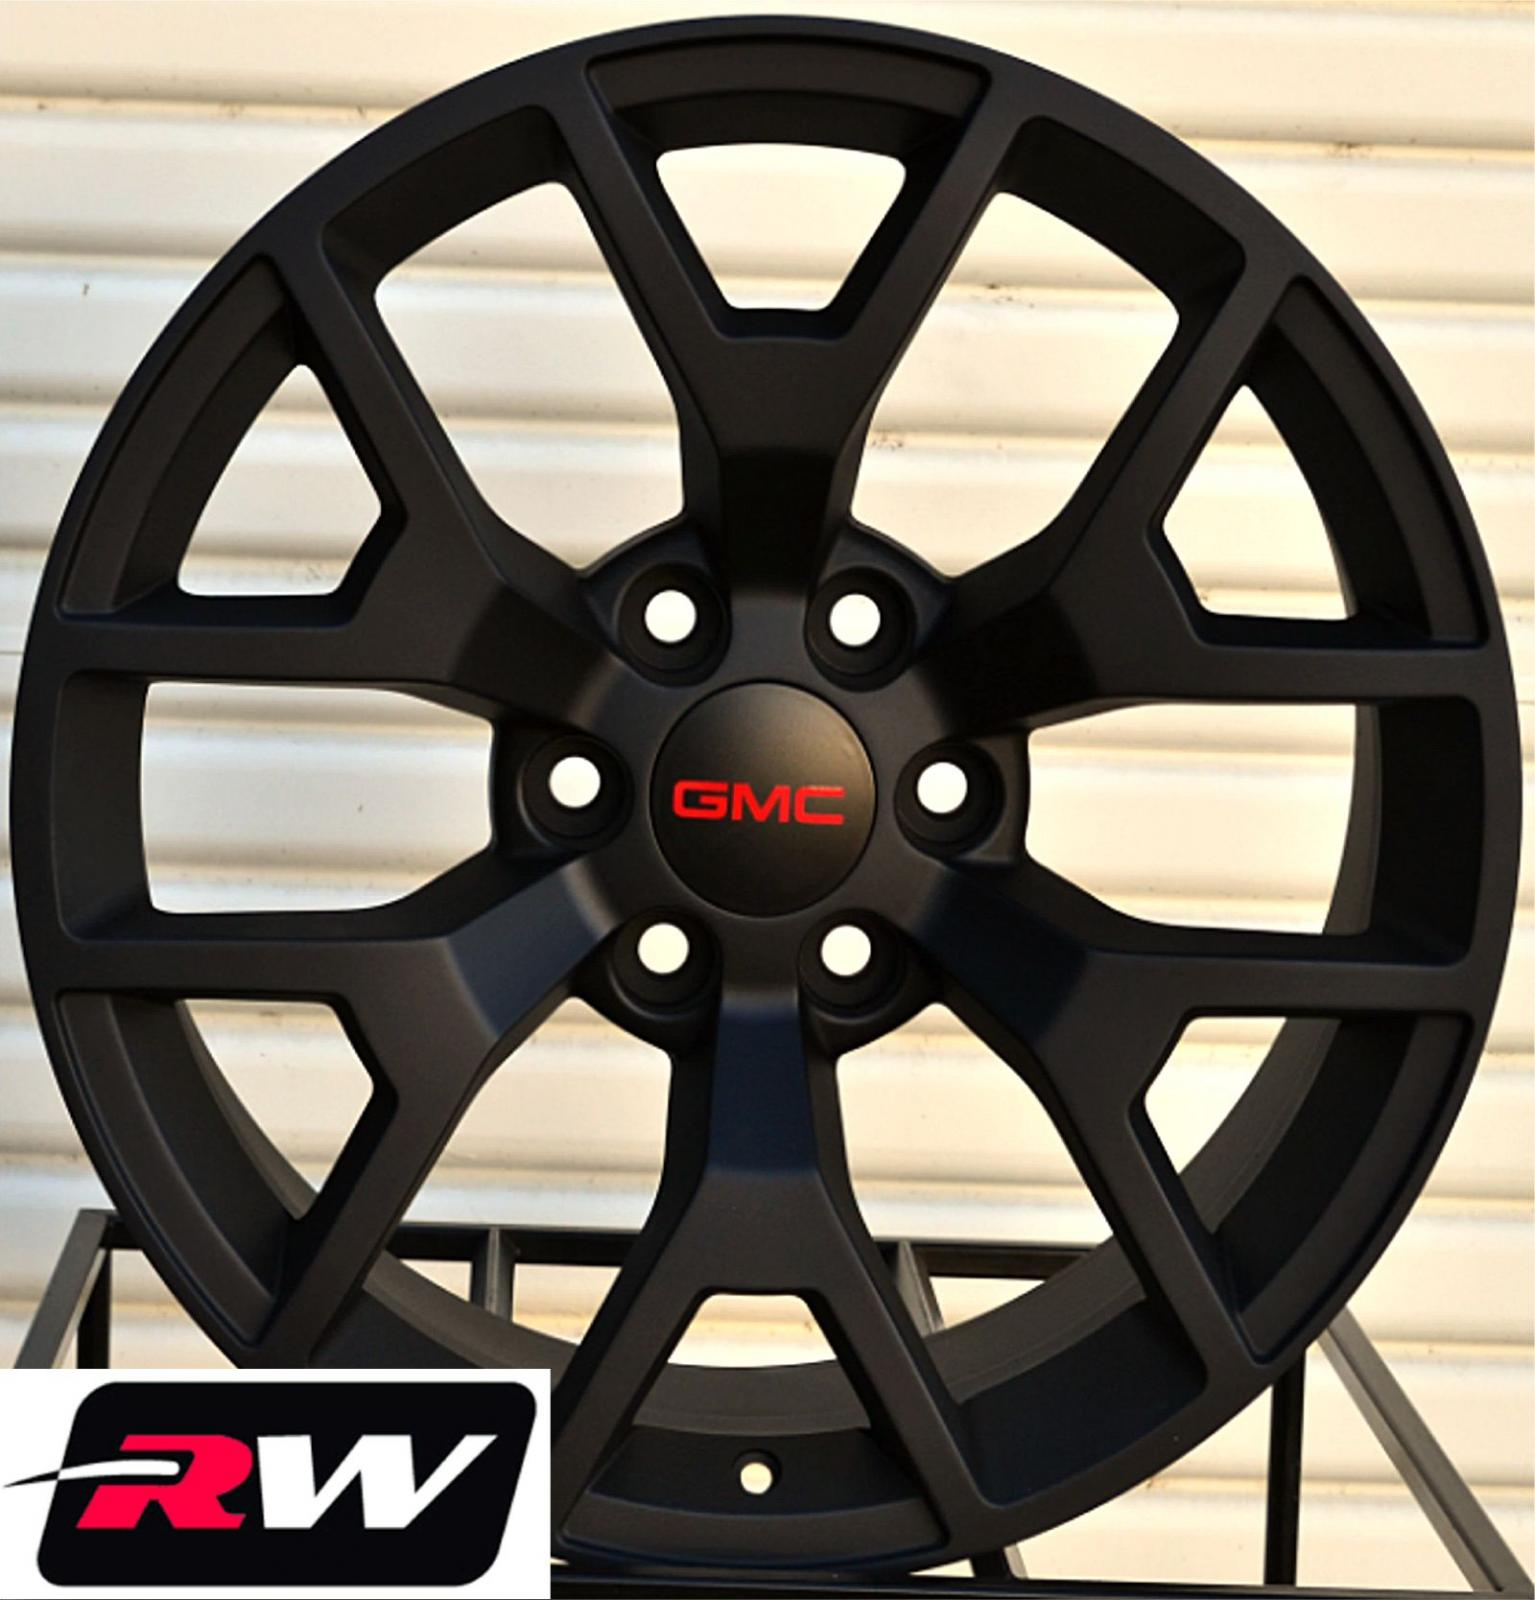 50 Inch Rims : Gmc sierra replica wheels satin black rims